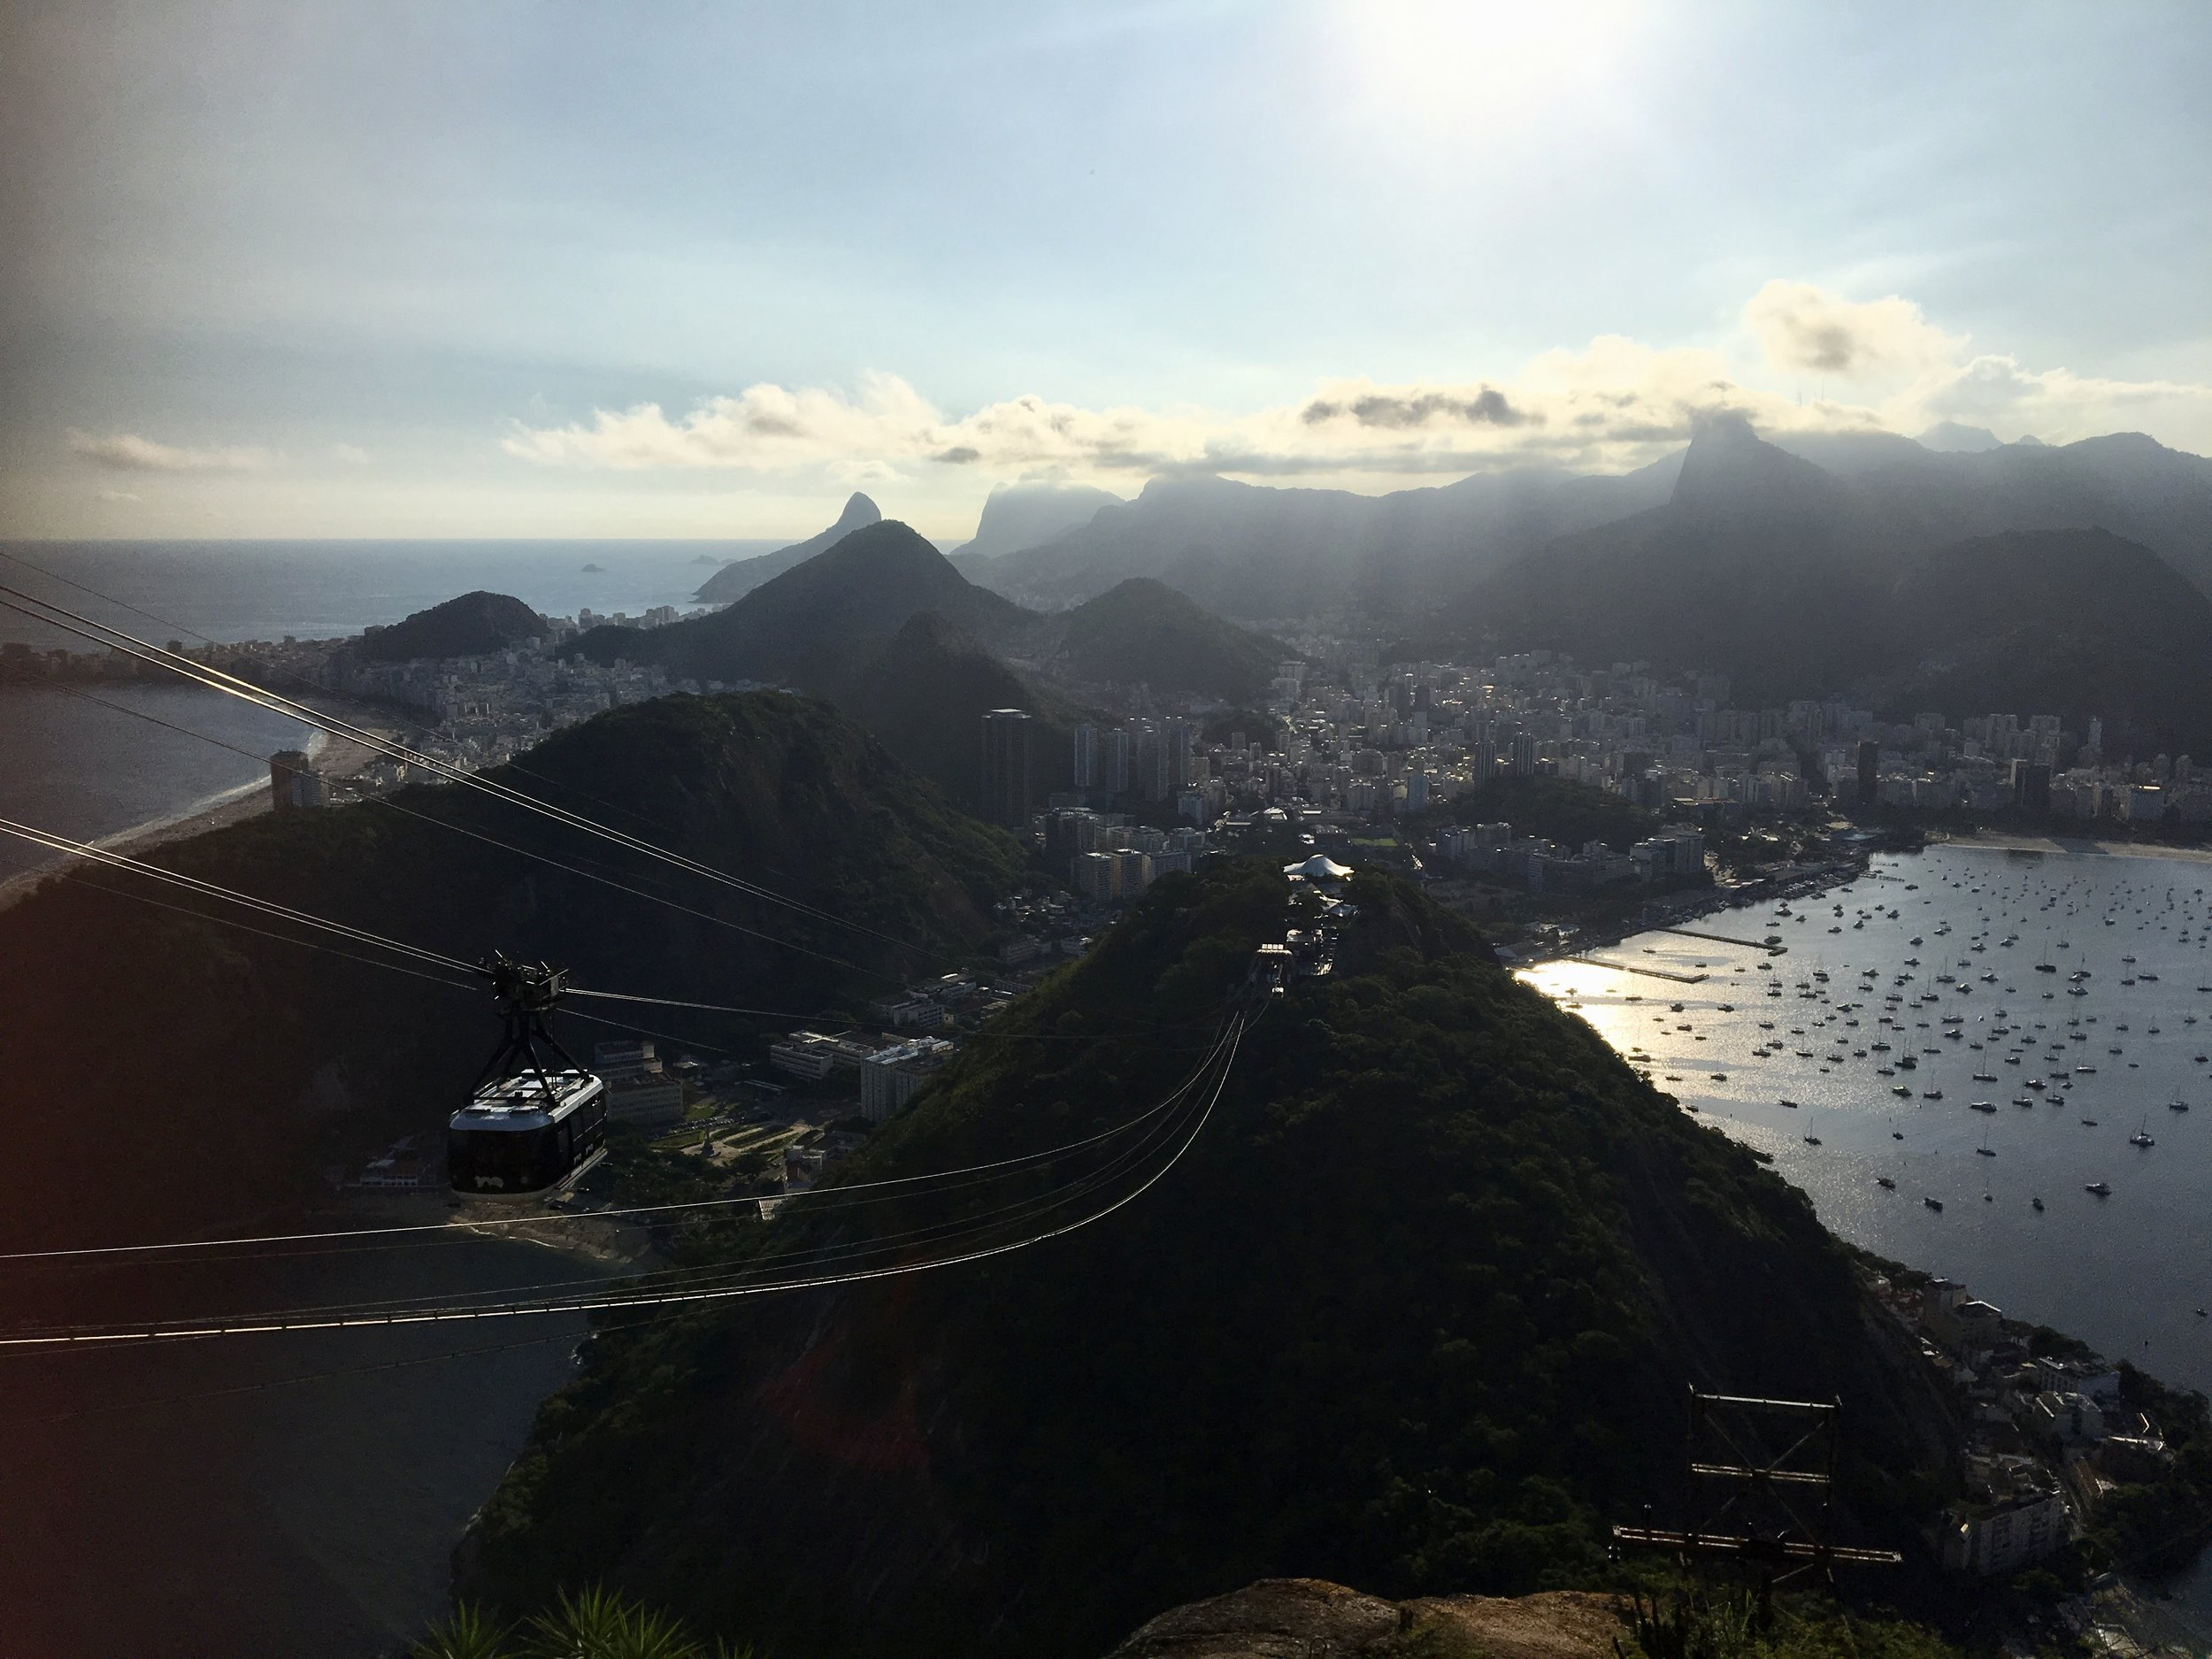 View from the top. Sugarloafs' name is said to be a reference to the mountains shape, which resembles the traditional shape of concentrated refined loaf sugar. ( Pao do Acucar, Rio de Janeiro, Brazil )